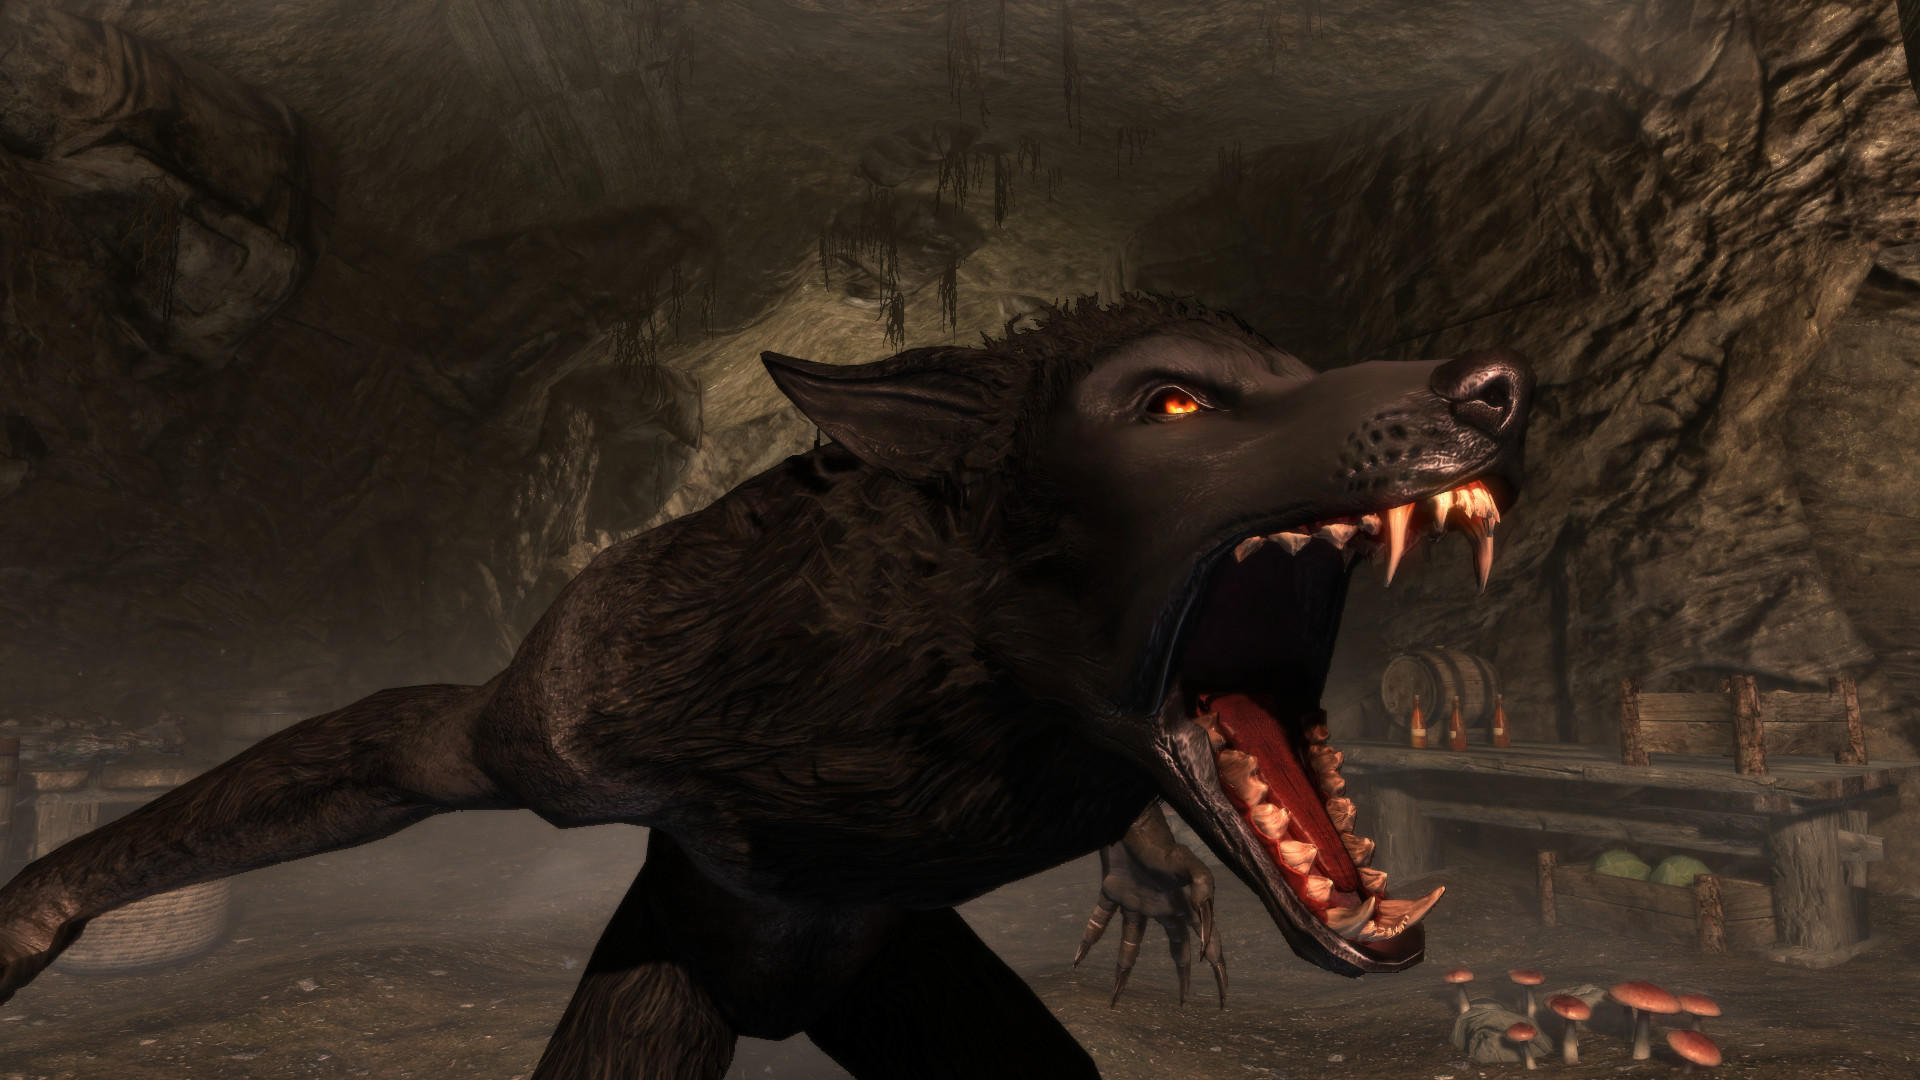 The Elder Scrolls V Skyrim Werewolf By Squishless Skyrim Werewolf